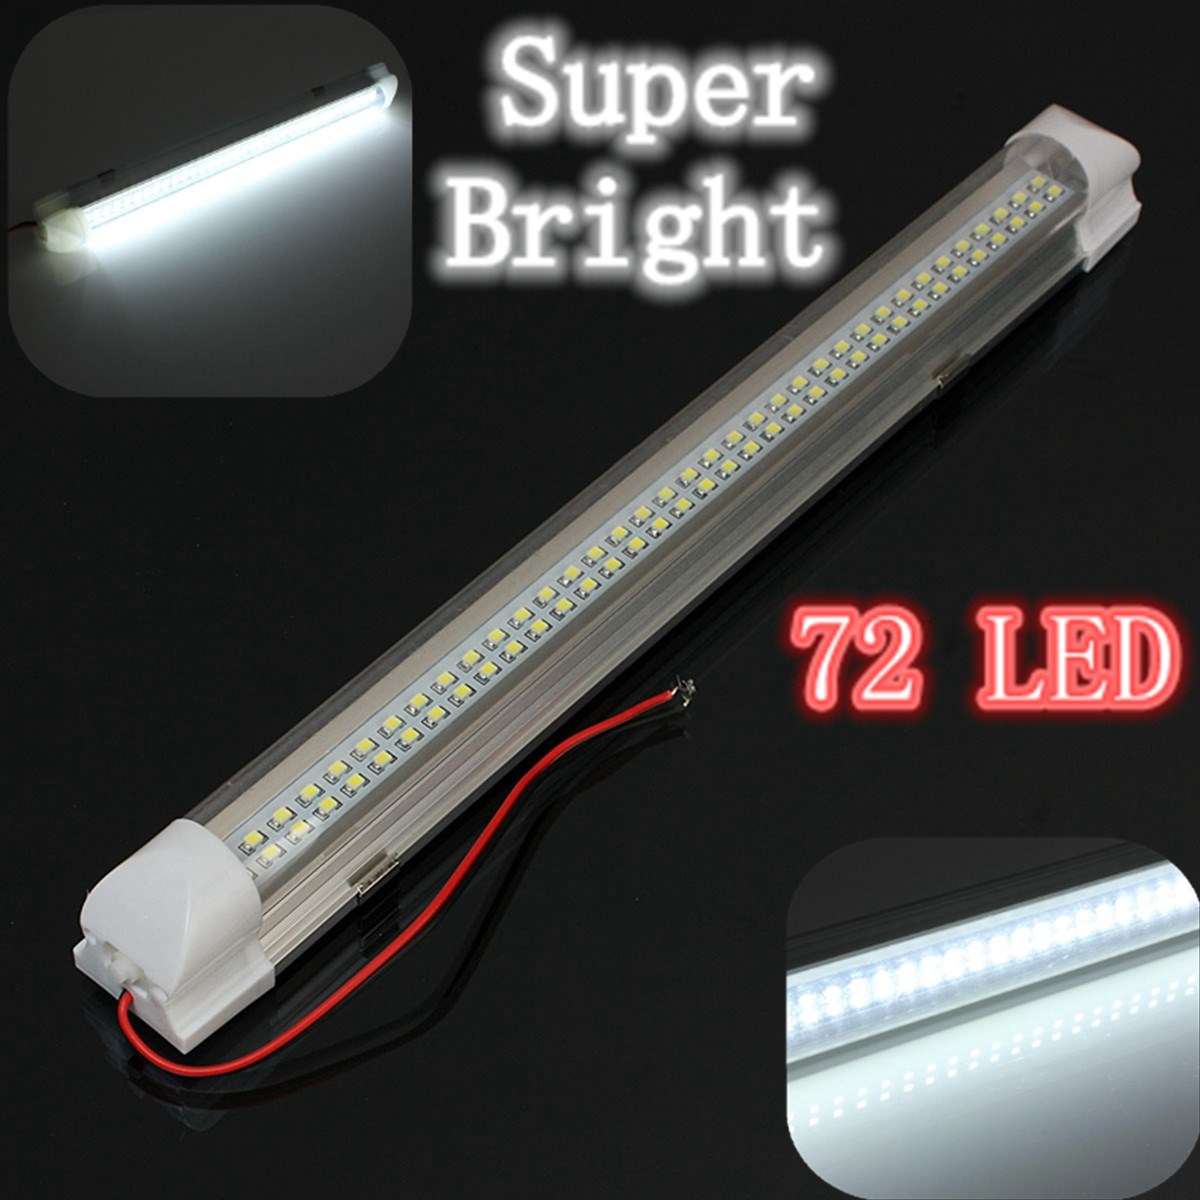 12V Universal Car Auto Caravan Interior 72 LED White Light Strip Bar 340MM  Lamp ON/OFF Switch In Signal Lamp From Automobiles U0026 Motorcycles On ...